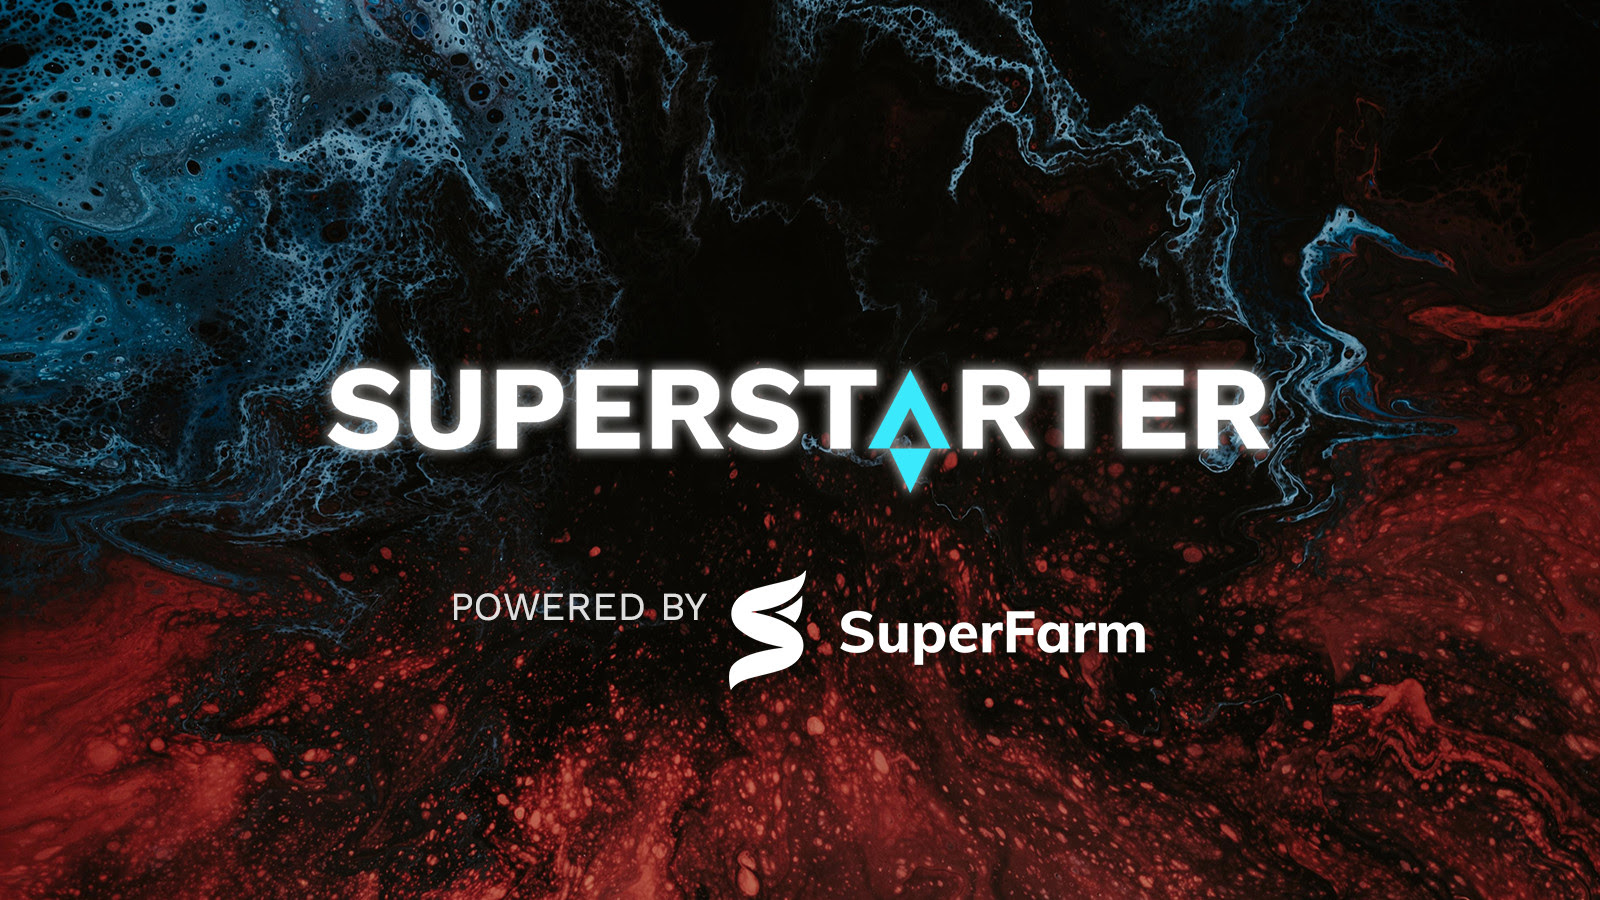 SuperFarm Launches SuperStarter, Its Native Crowdfunding Platform